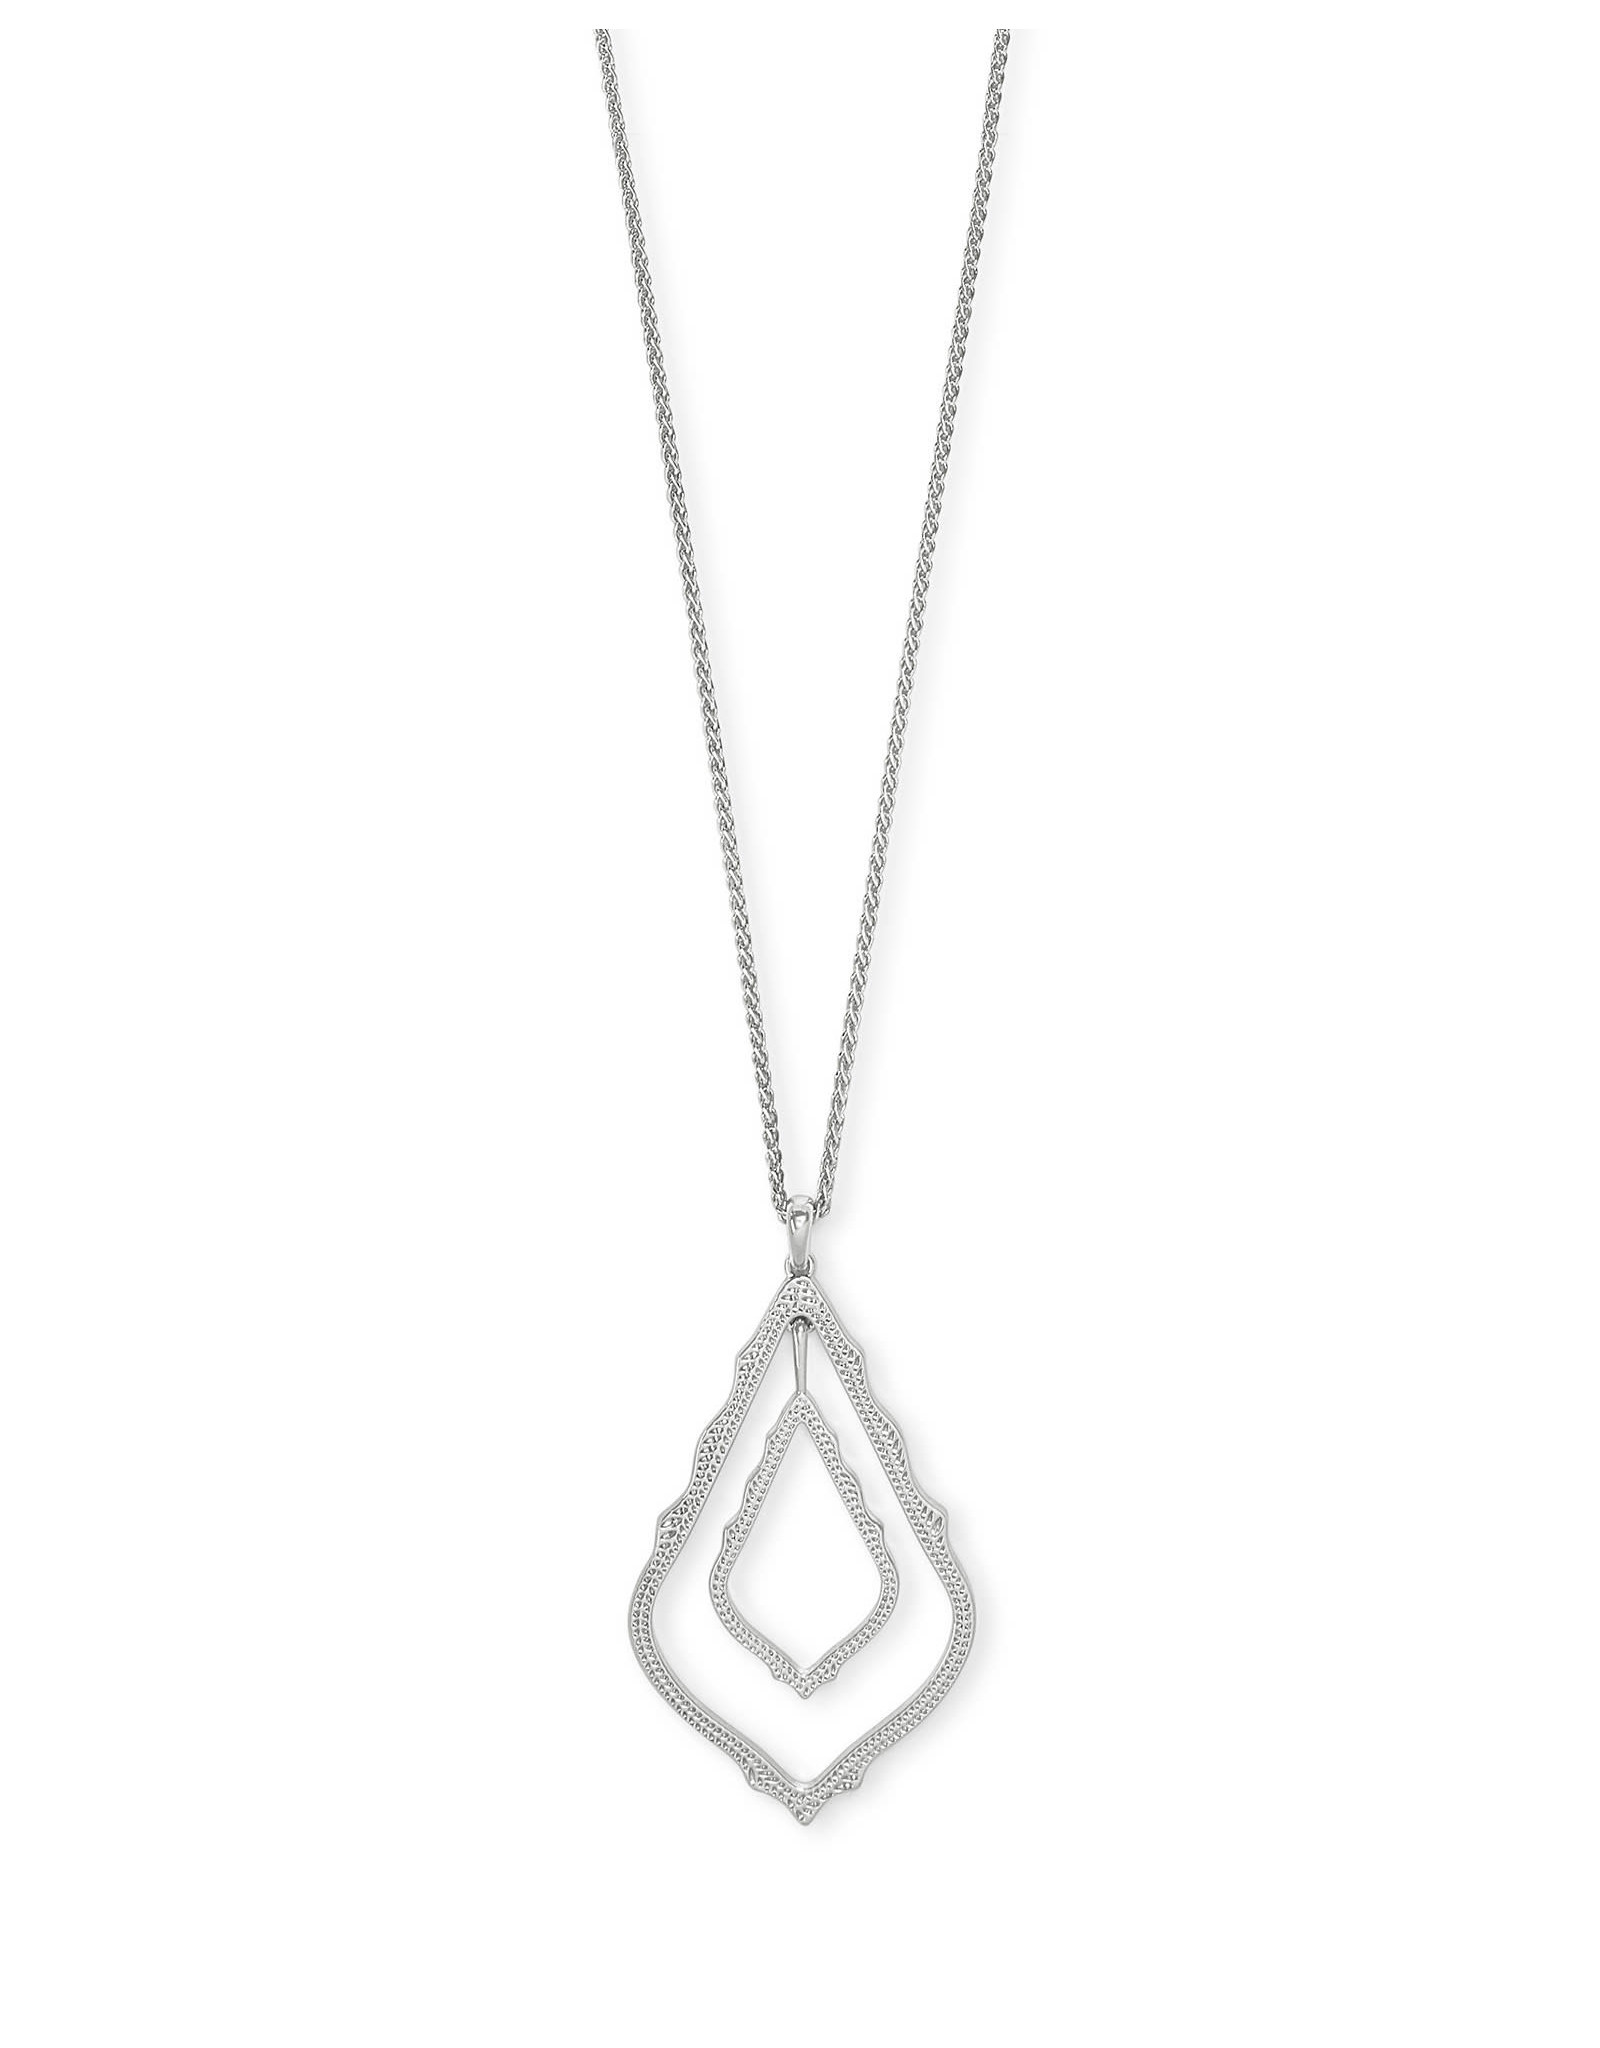 Kendra Scott Kendra Scott Simon Necklace